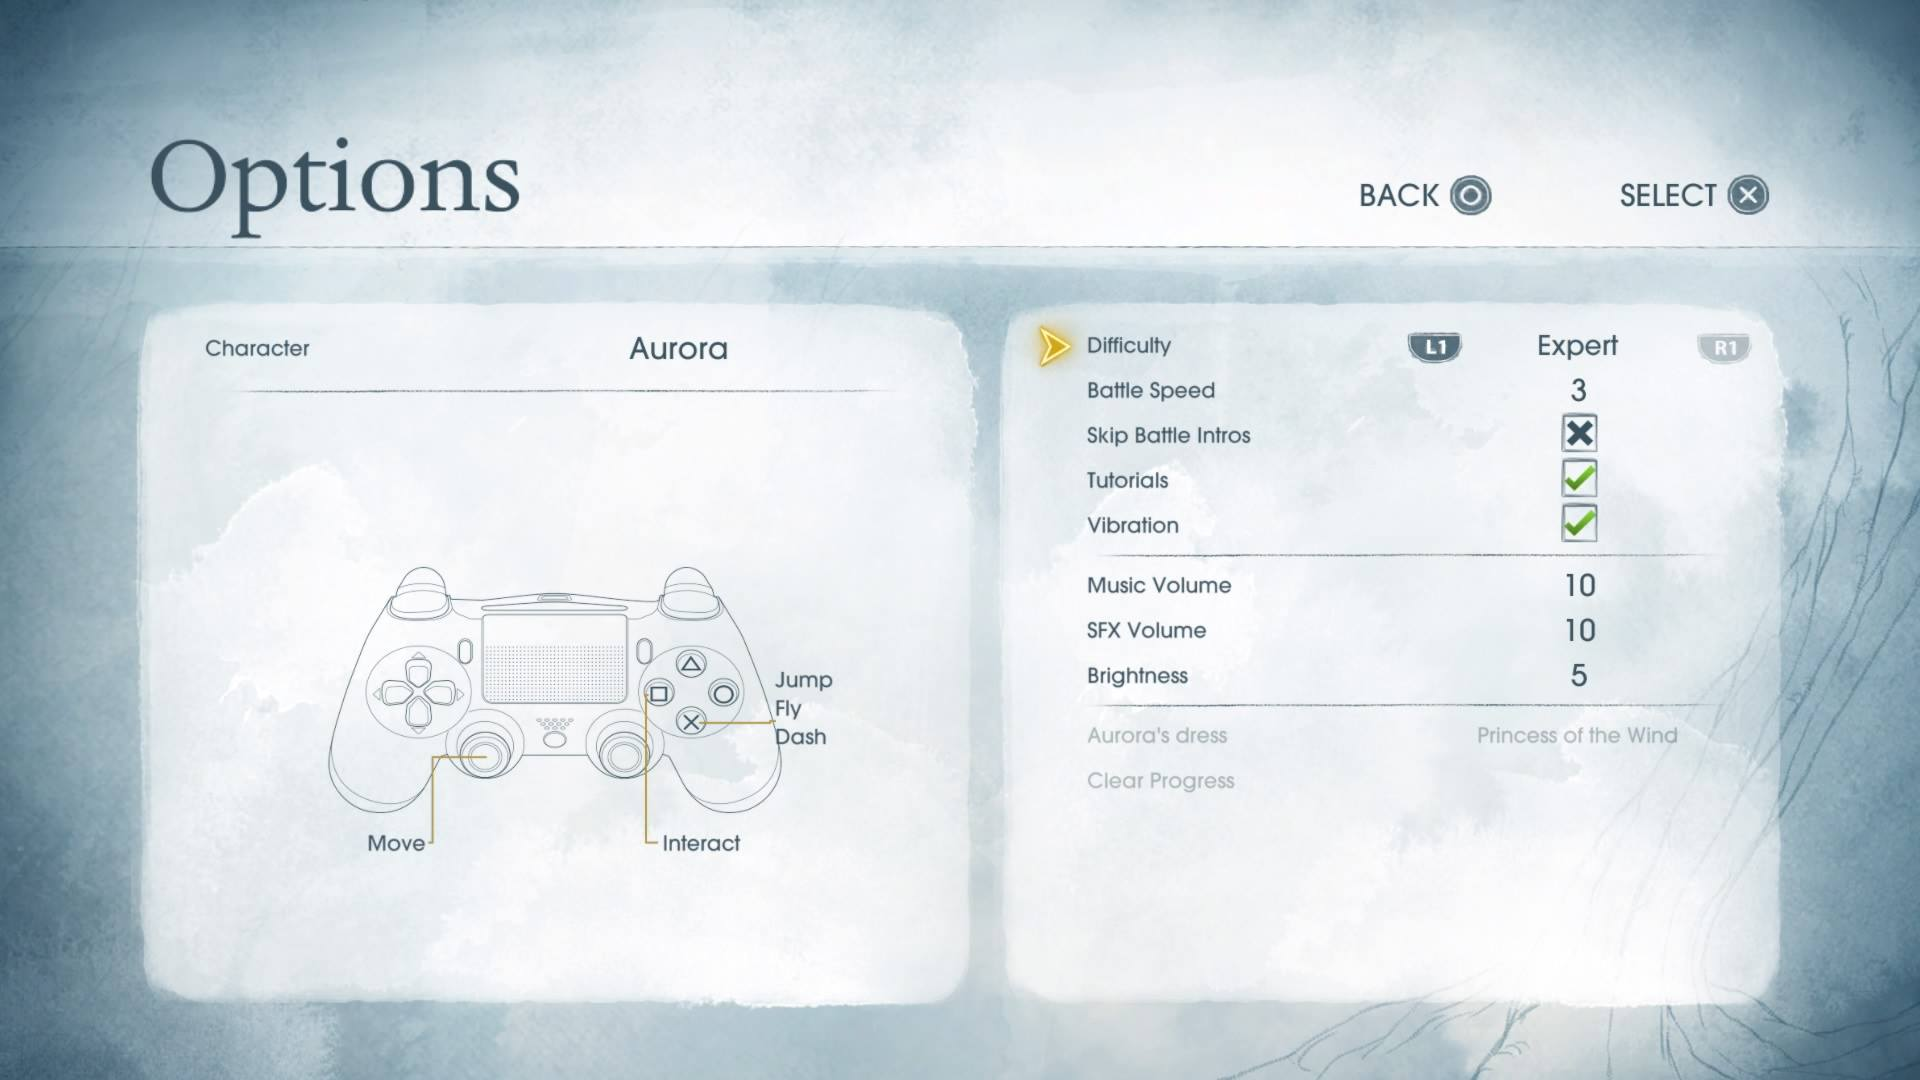 Customizing the difficulty and battle speed in Ubisoft's Child of Light